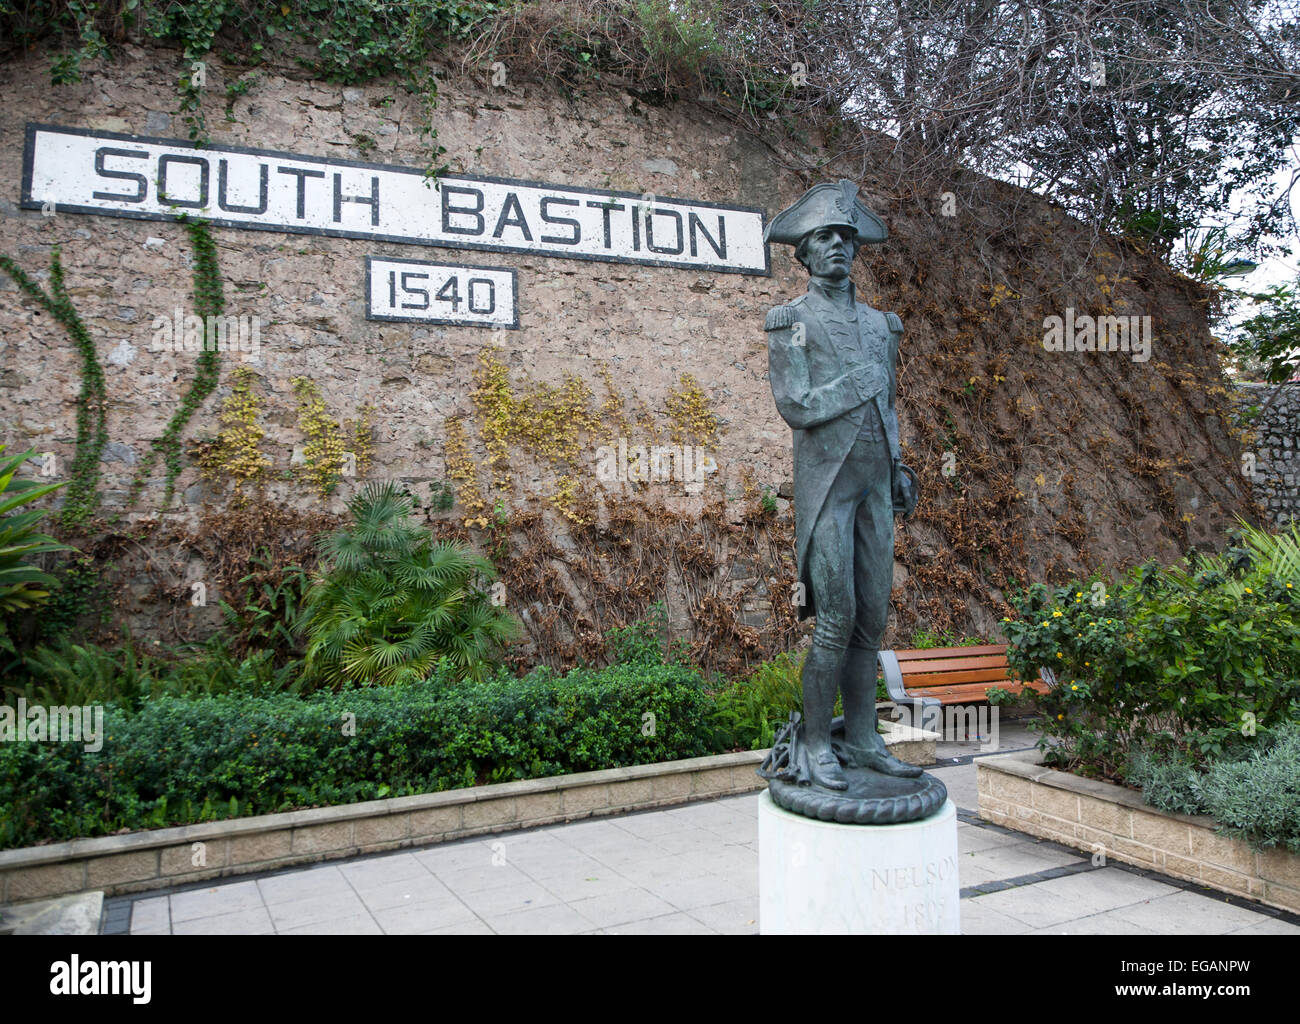 Statue of Admiral Lord Nelson at South Bastion, Gibraltar, Gibraltar, British territory in southern Europe - Stock Image